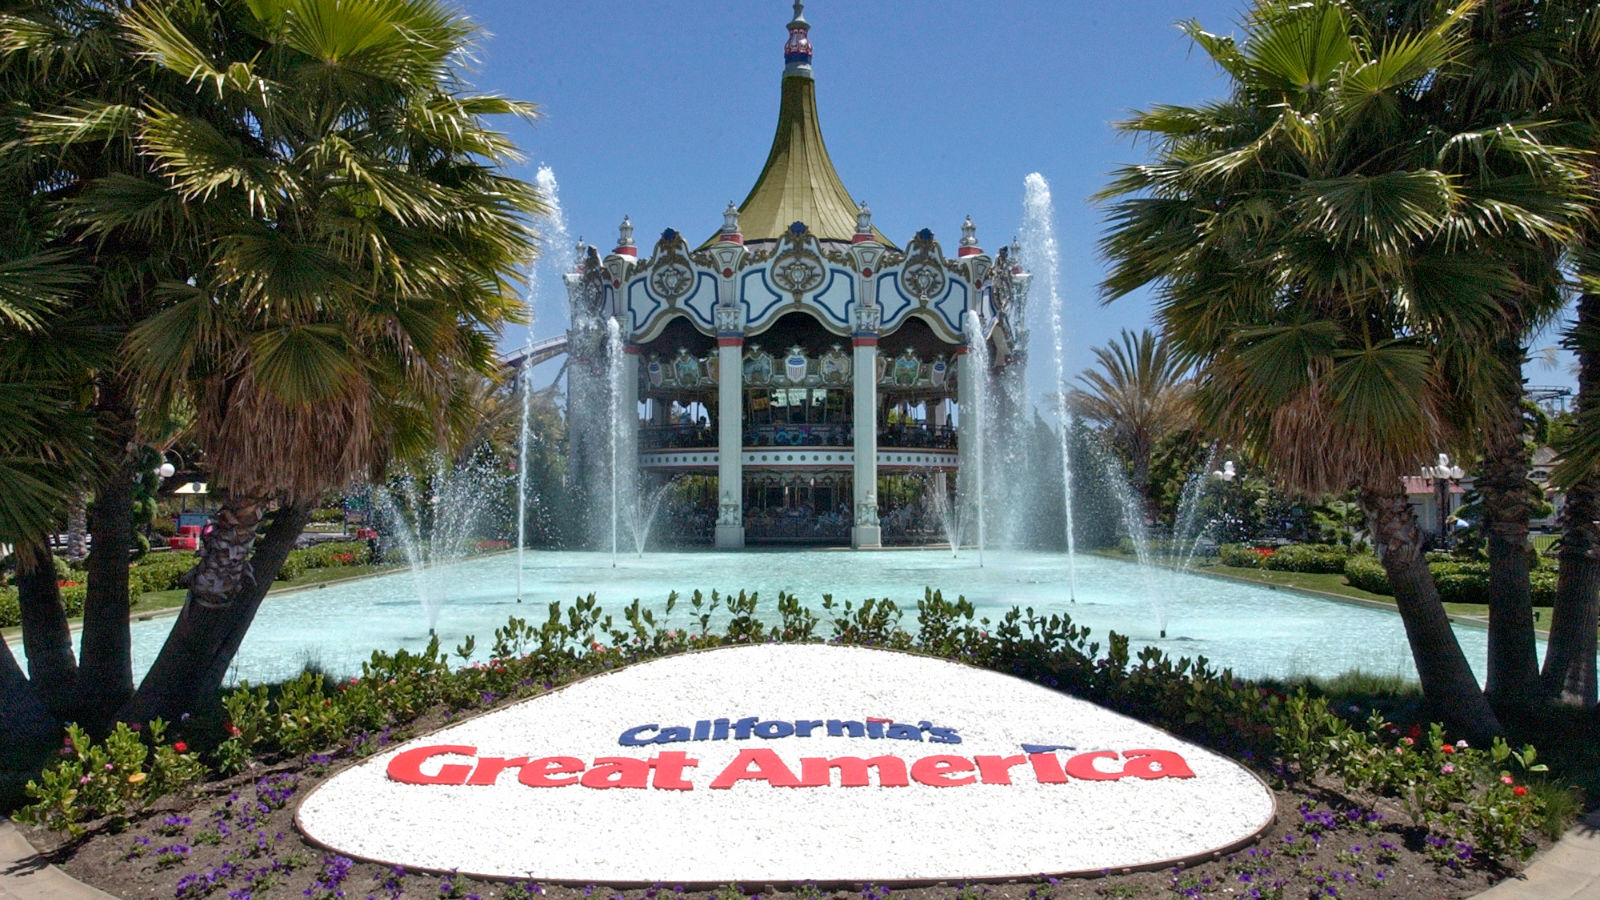 Things to Do in Sunnyvale - California's Great America Amusement Park